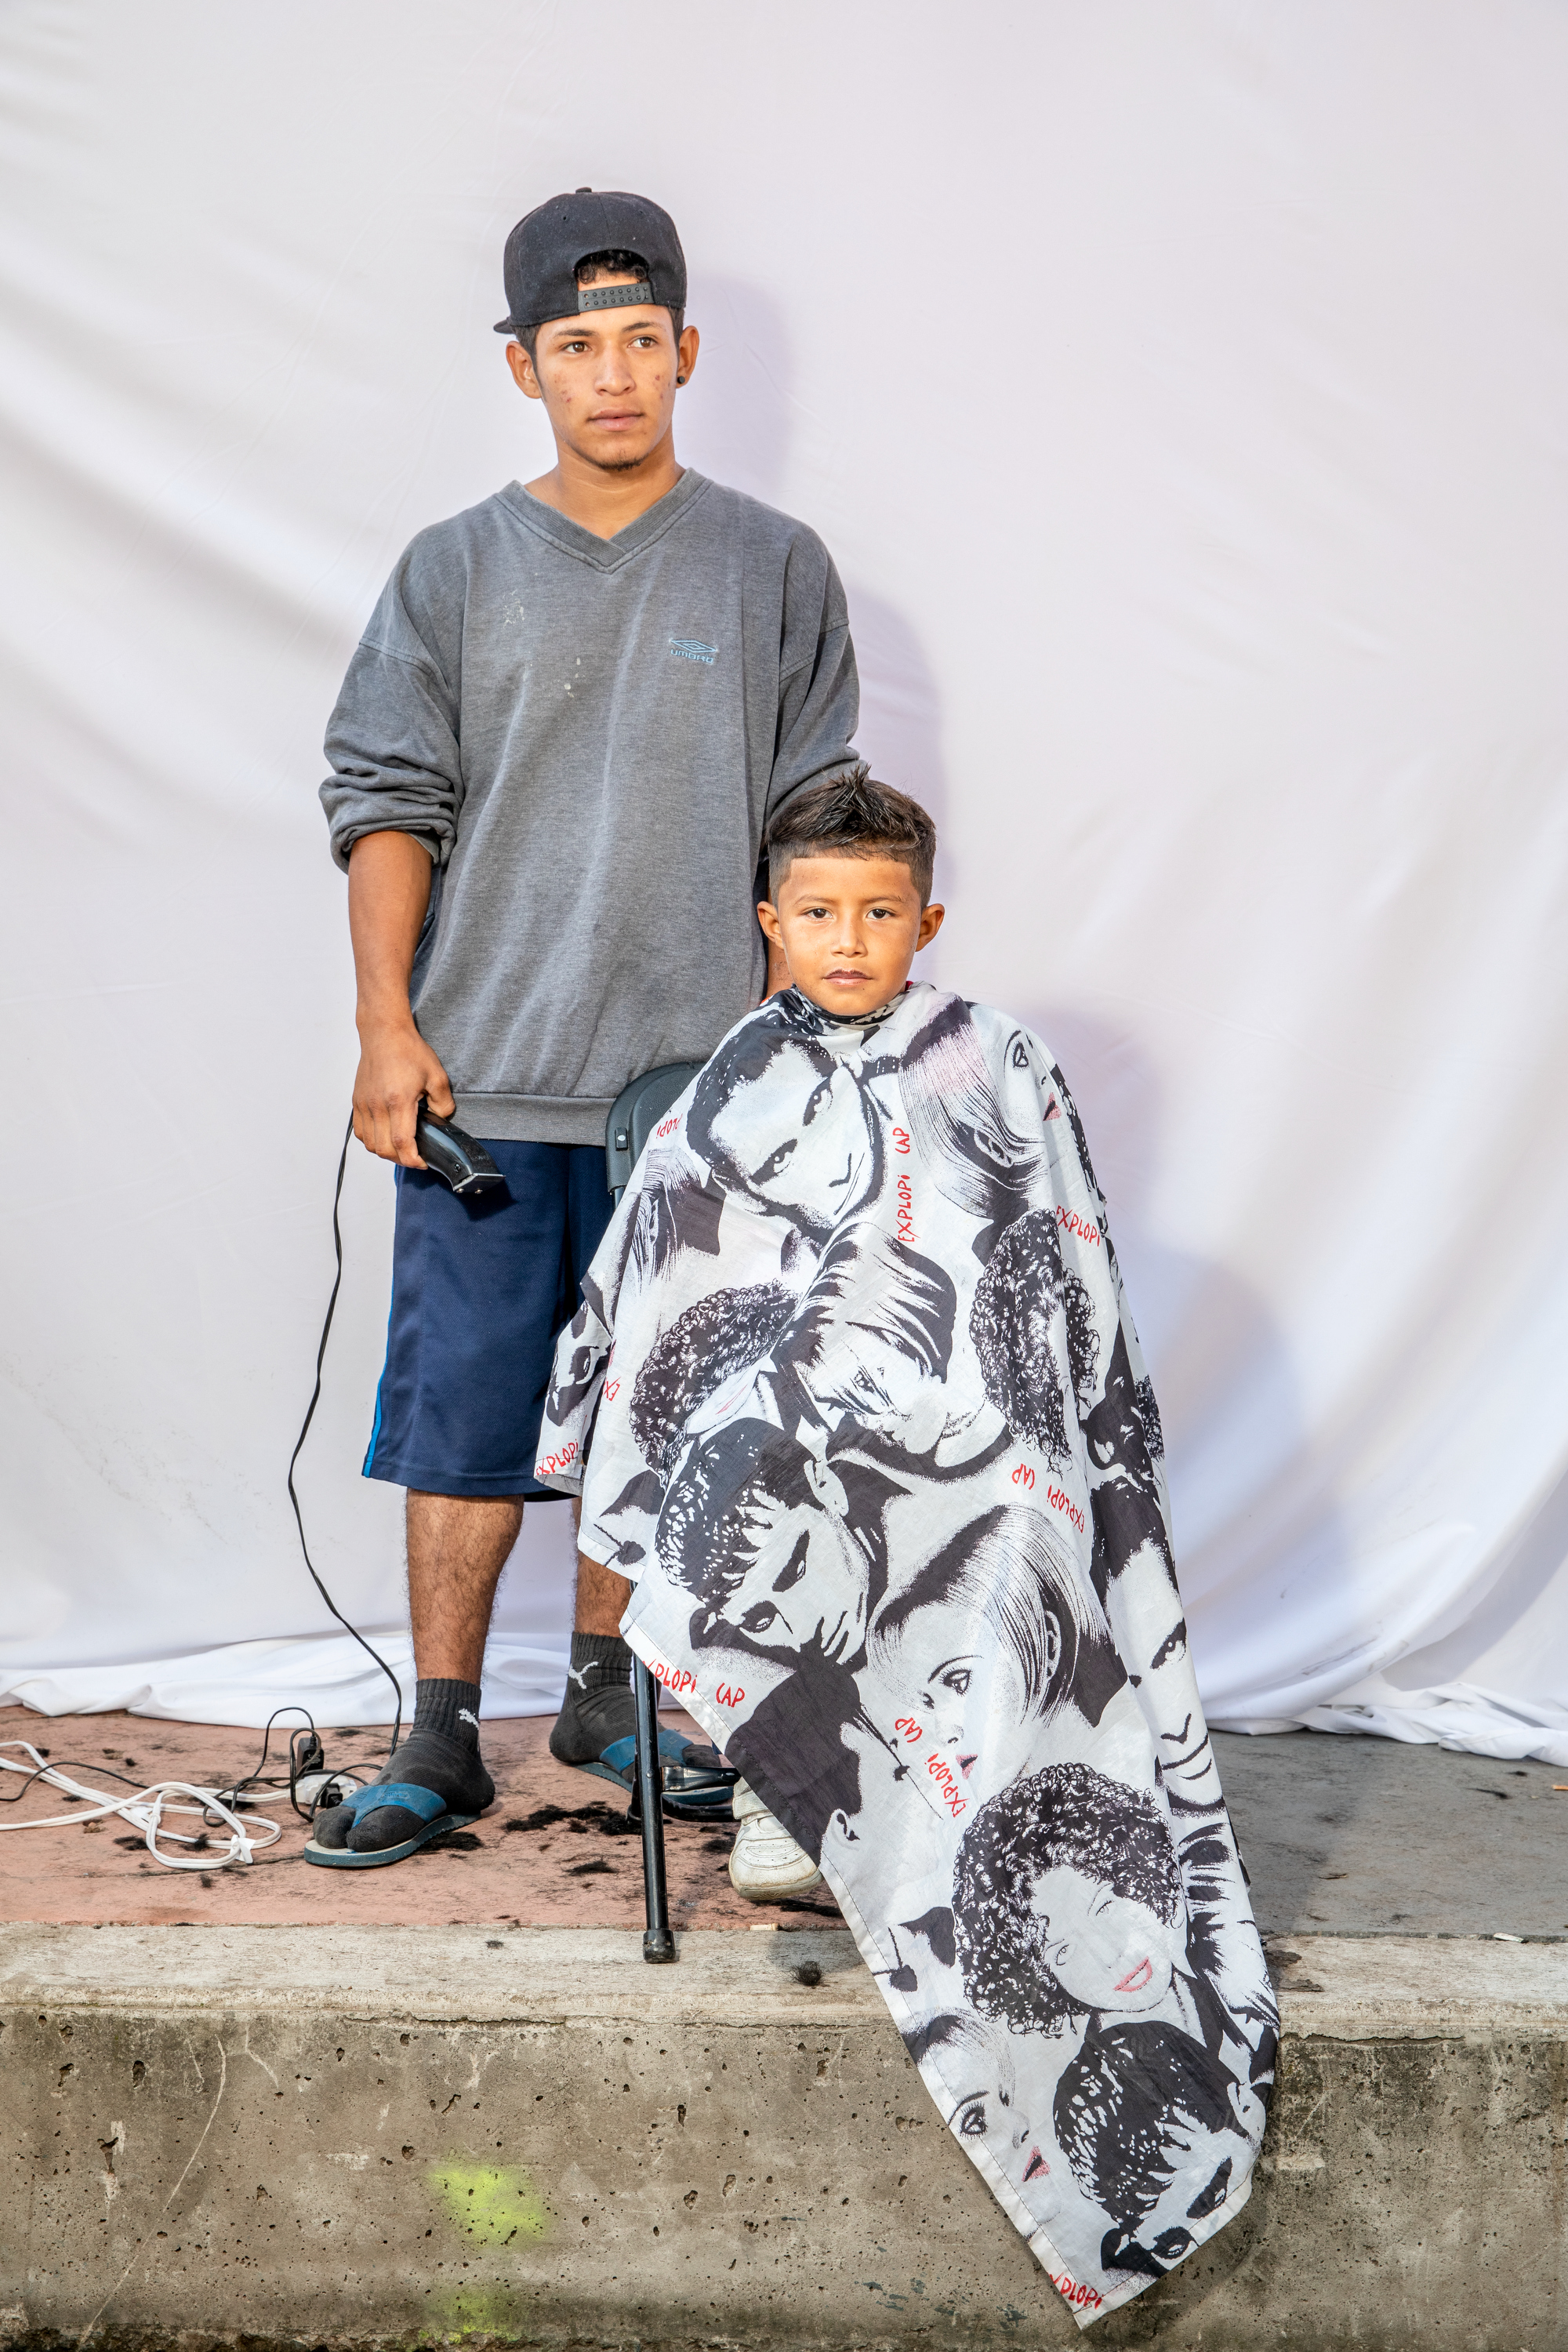 """I want to get to the States, to learn English. I do not want to return to my country,"" - said Elder Claros Martínez, 7 years old, from Ocotepeque, Comayagua, Honduras, while he was getting his hair cut at the caravan camp in Mexico City.""They charge you just for living, the tax of war as they say,"" said Herson Manuel, 19 years old, from San Pedro Sula, Honduras. The day he left, he had to pay his monthly bills for his barbershop, but that did not leave Manuel with enough to pay the gangs their fee, ""I better go, I said.""""I'm afraid of the gangsters. They say that if you leave the neighborhood and then later return, they will kill you. It's like me, if I go back, they will kill me. None of us (in the caravan) can go back for the same reason."""